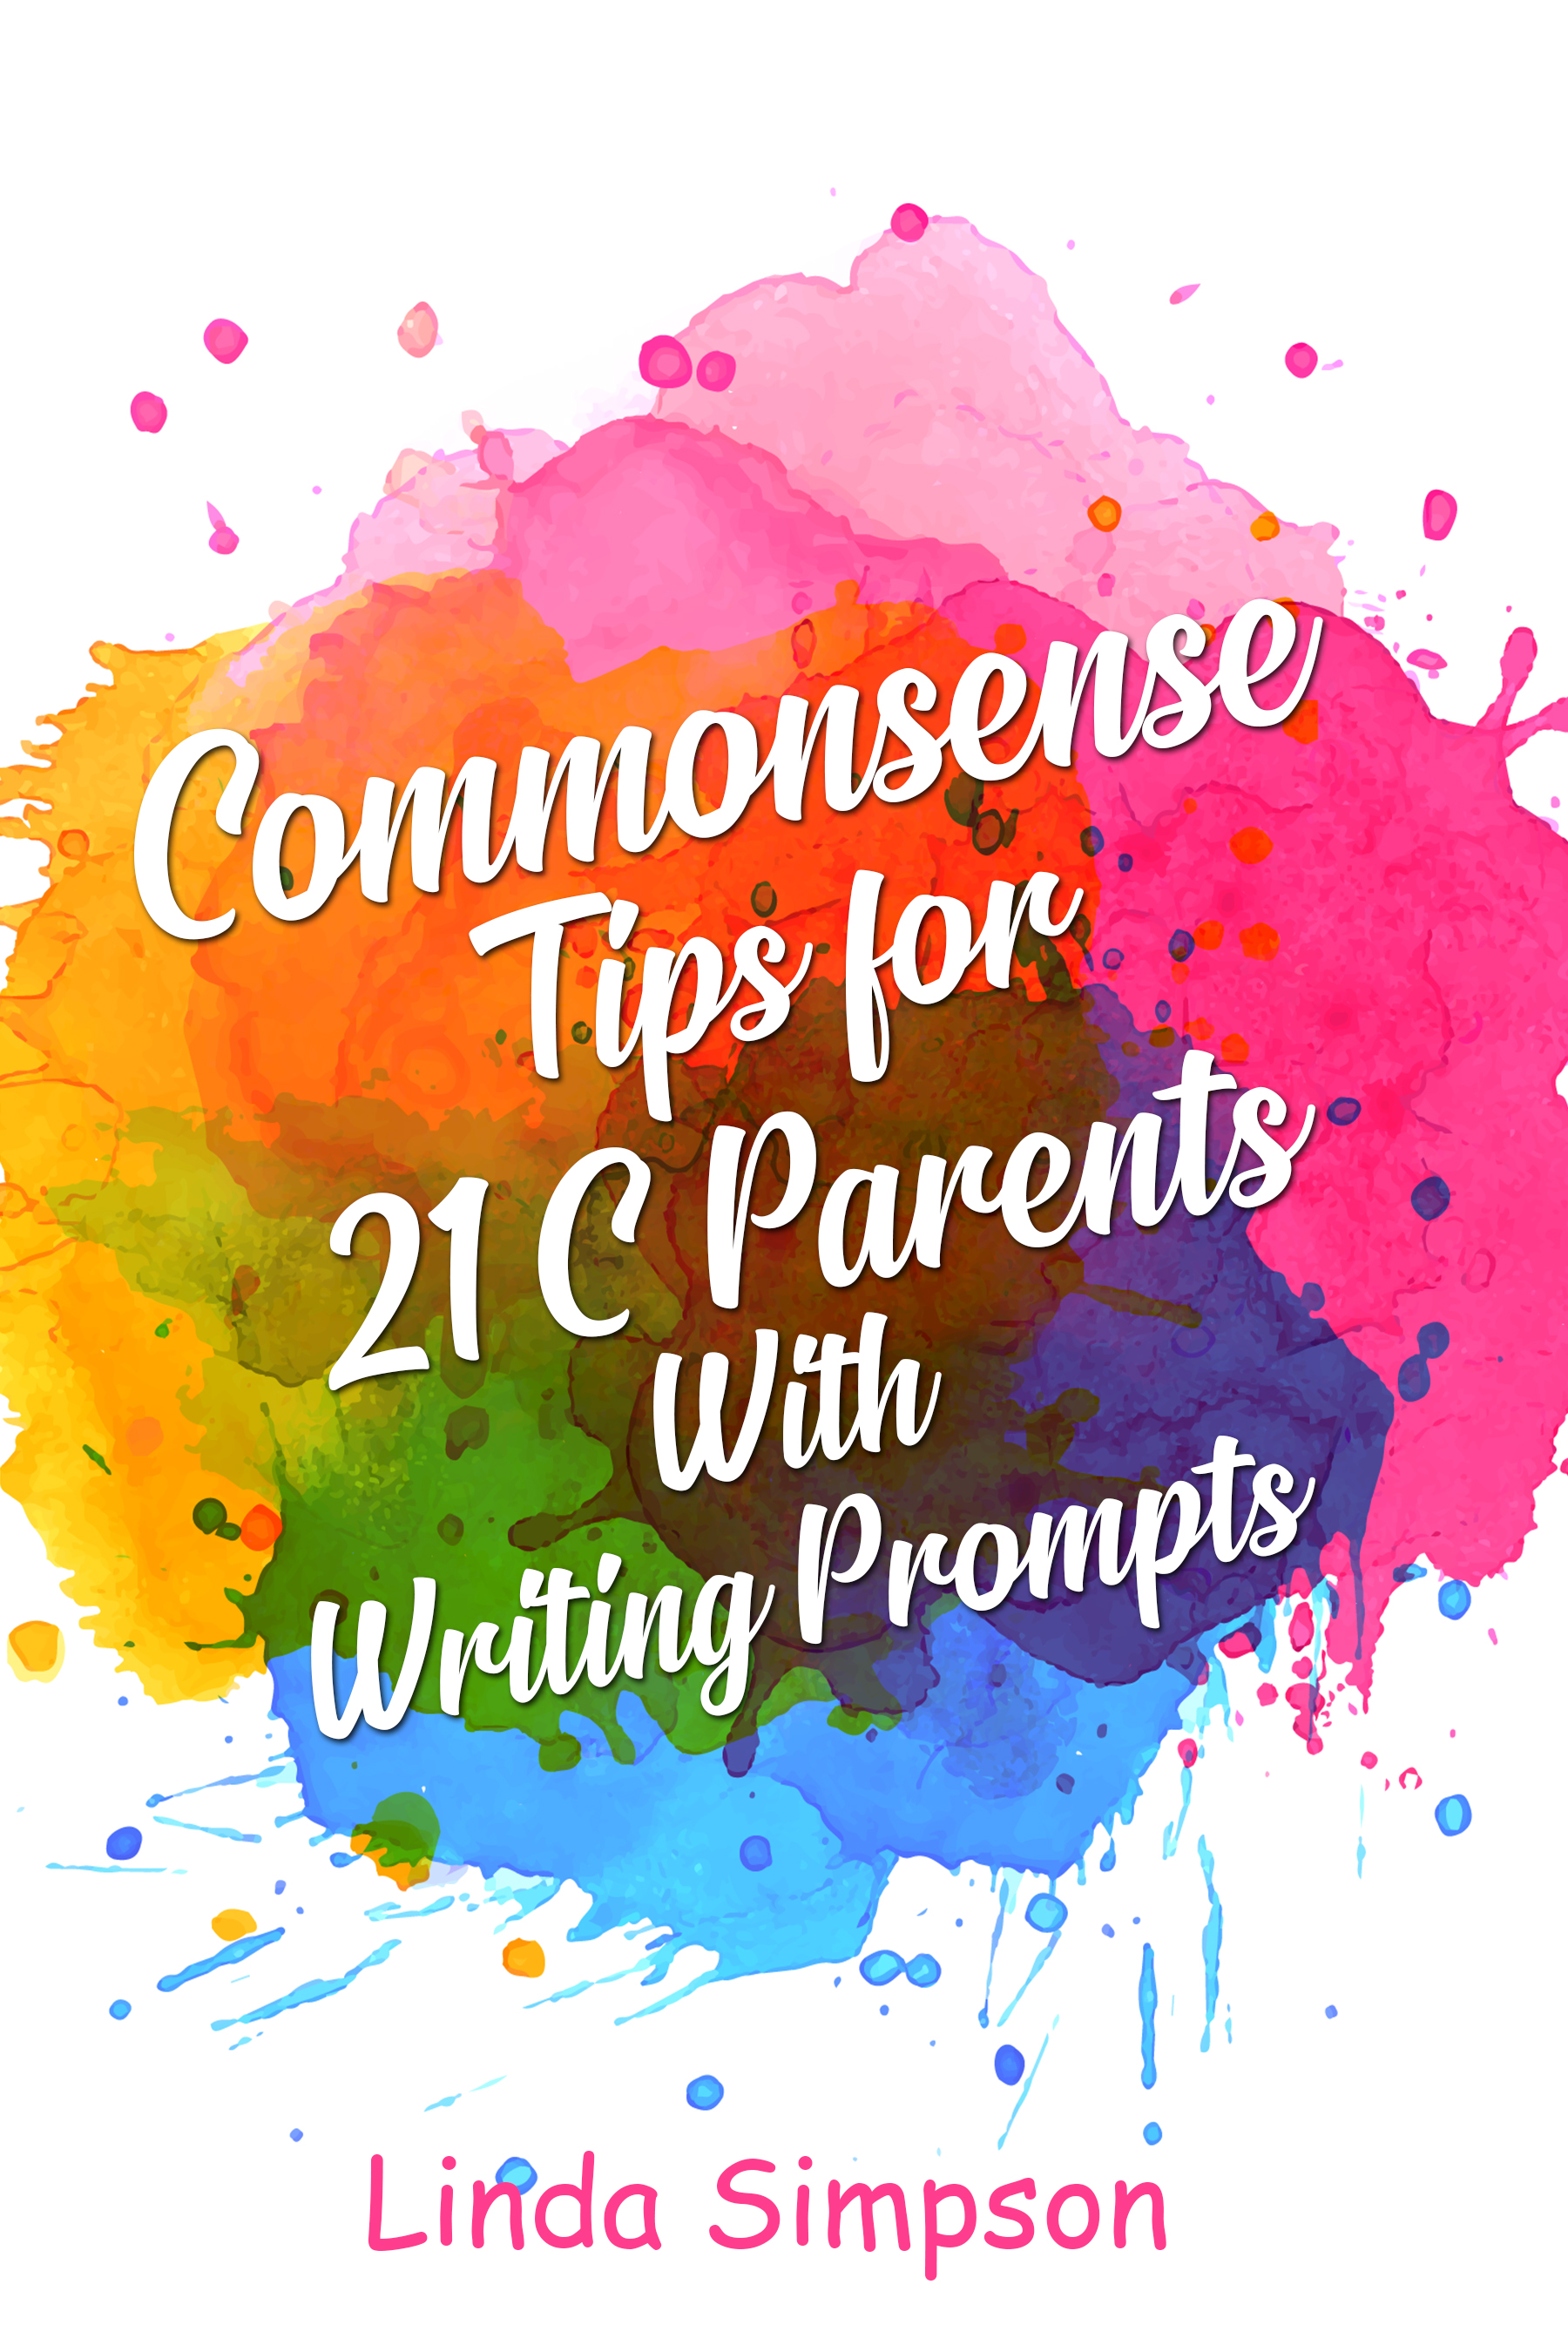 Commonsense Tips for 21 C Parents With Writing Prompts